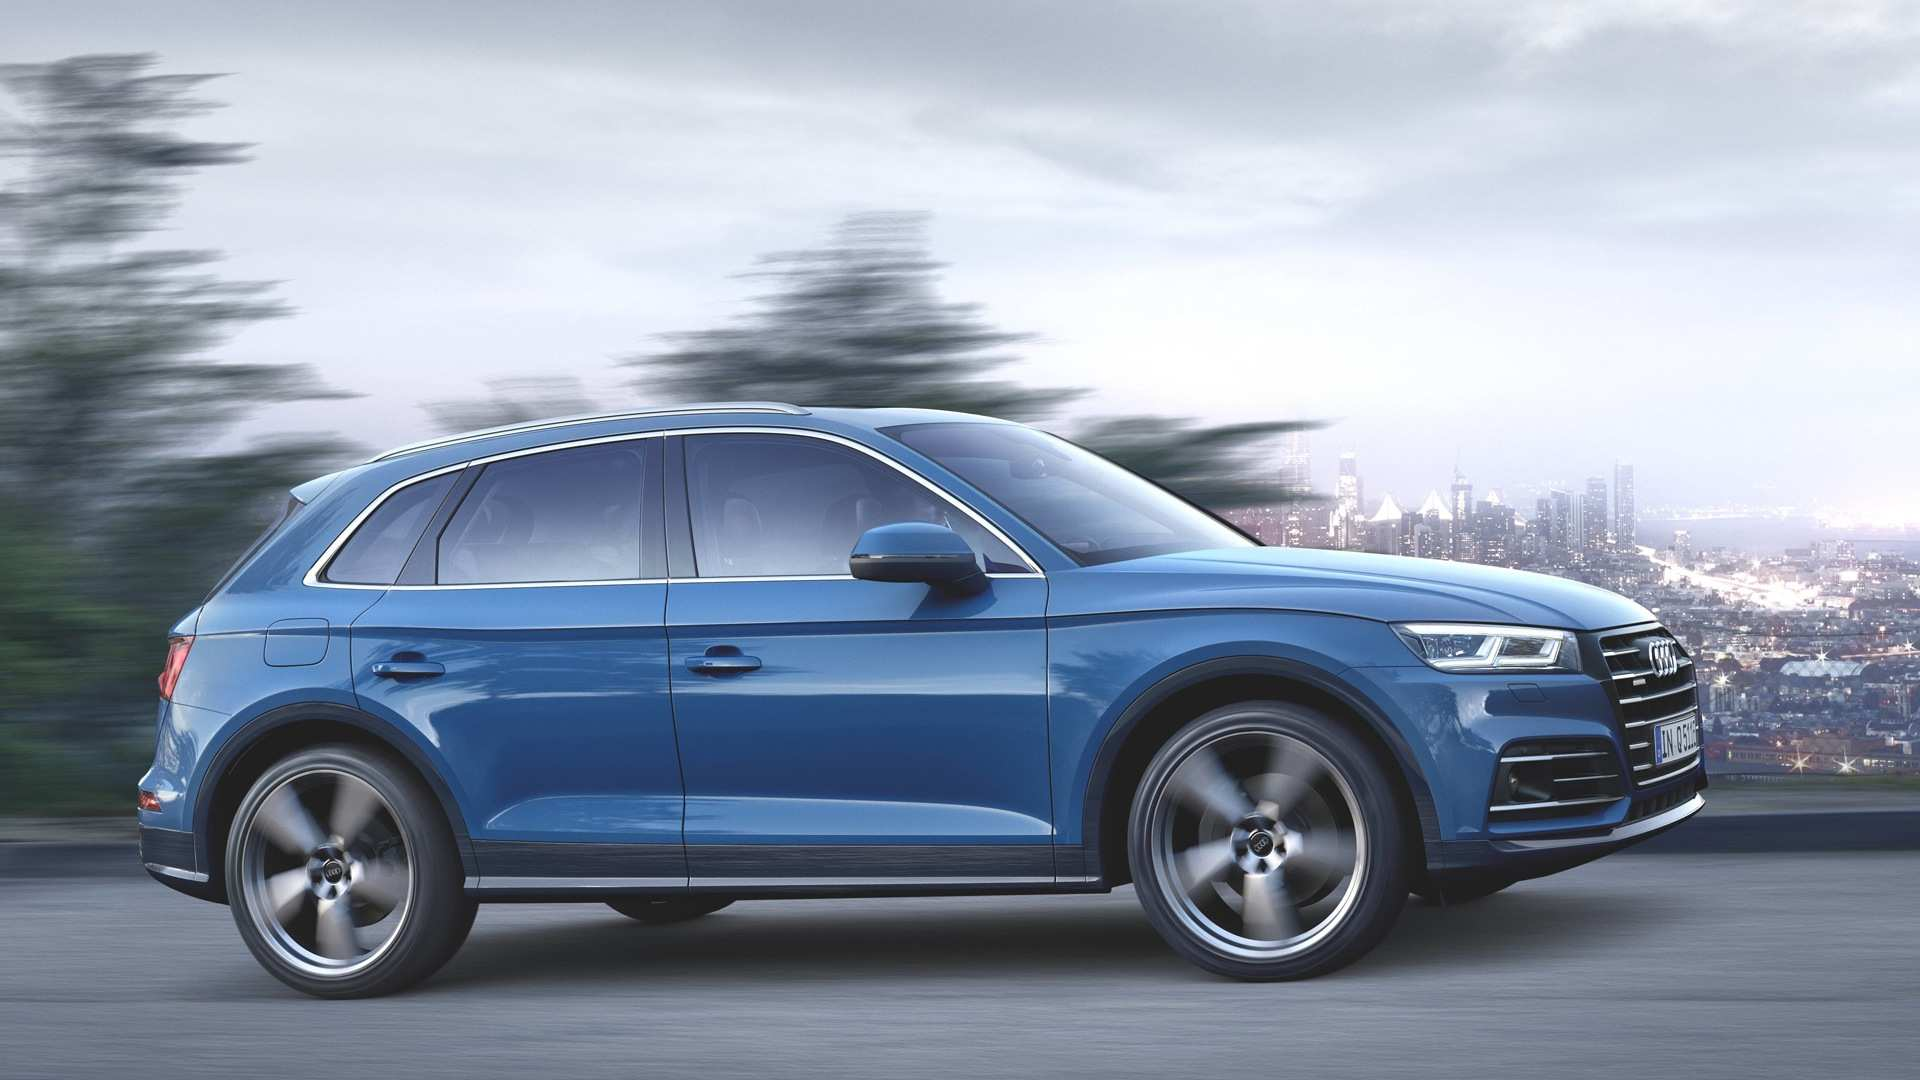 87 The Release Date Of 2020 Audi Q5 History